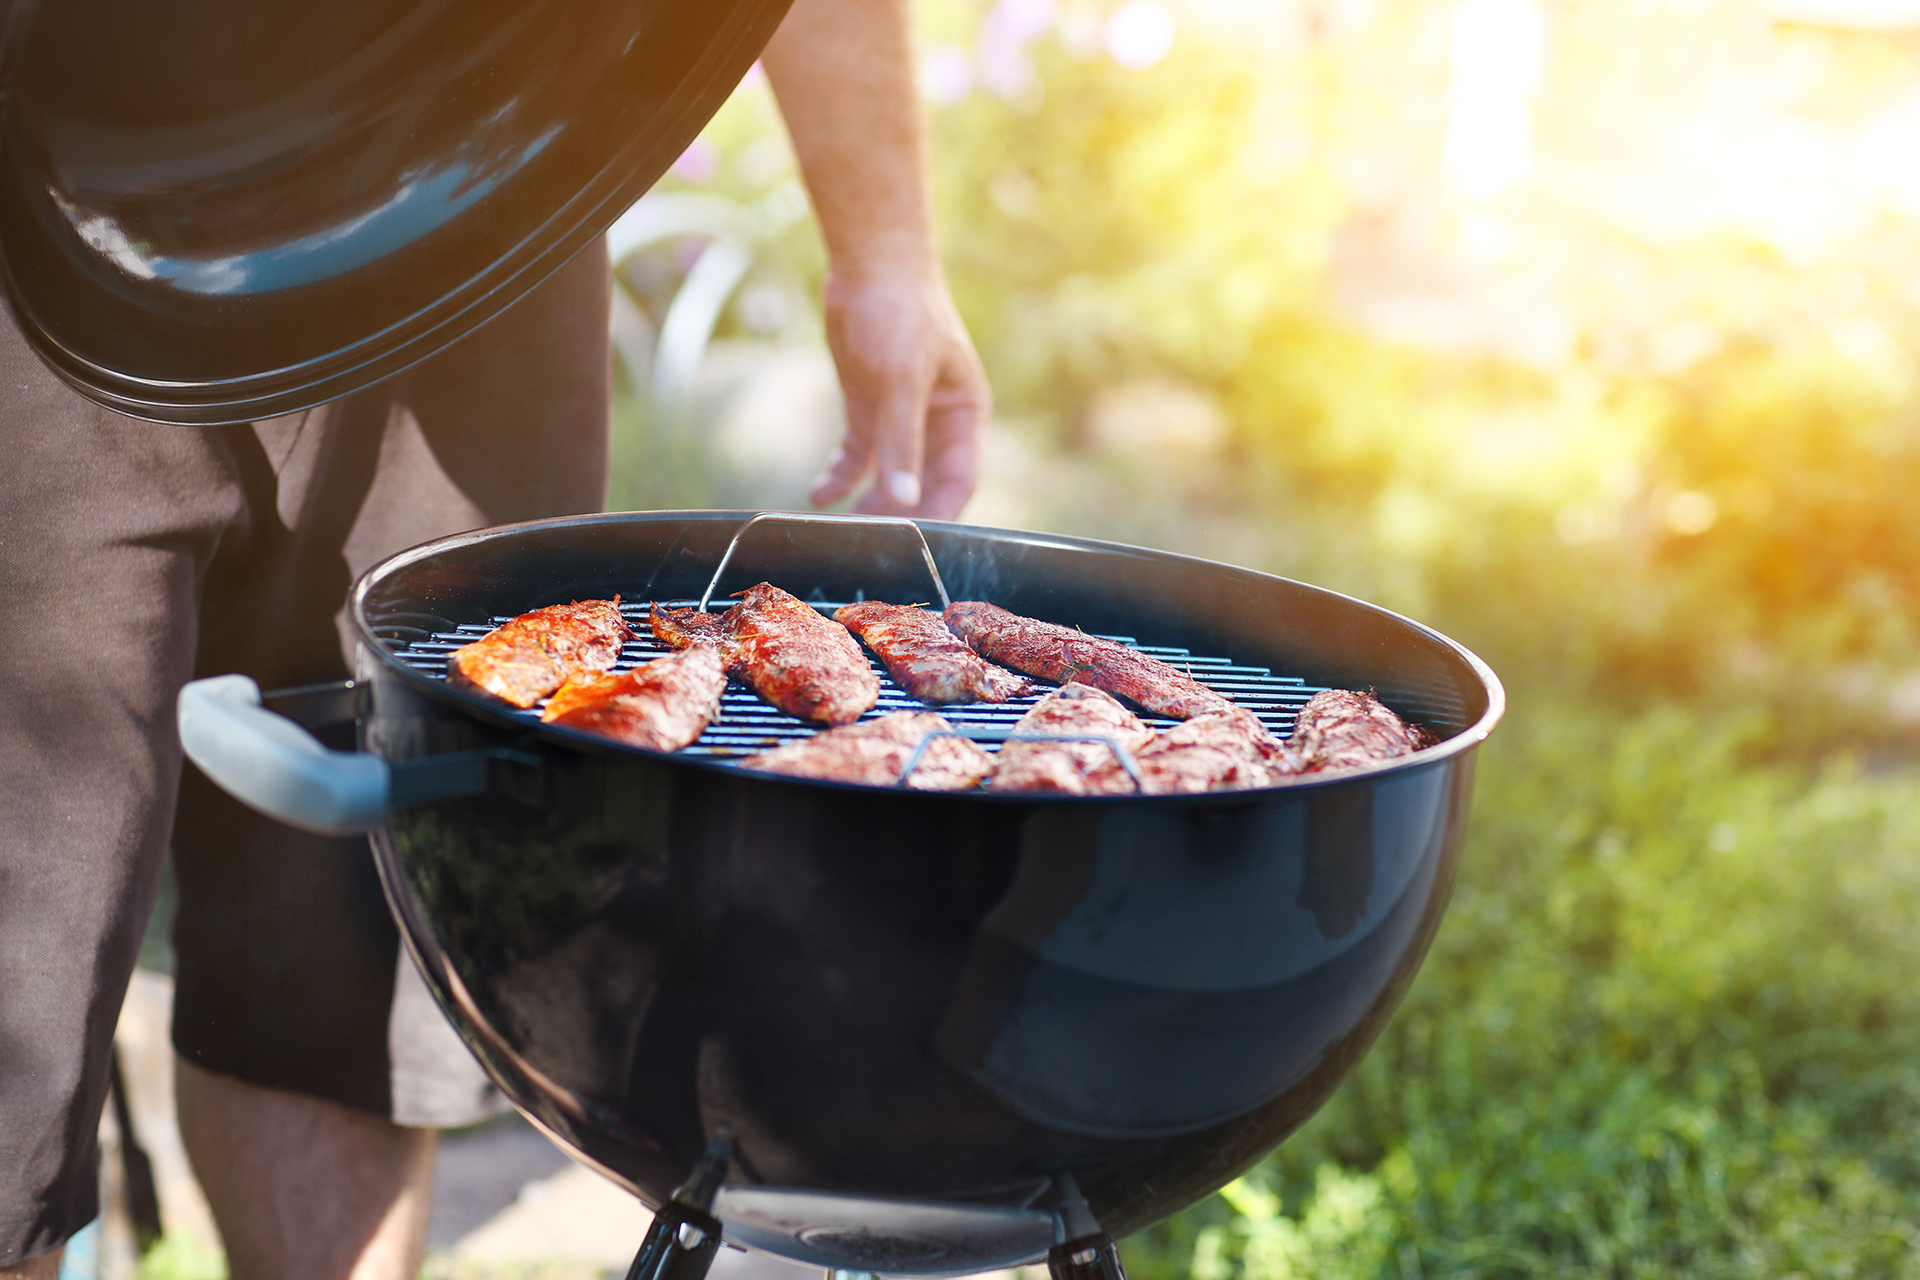 a picture of a person grilling fish outside